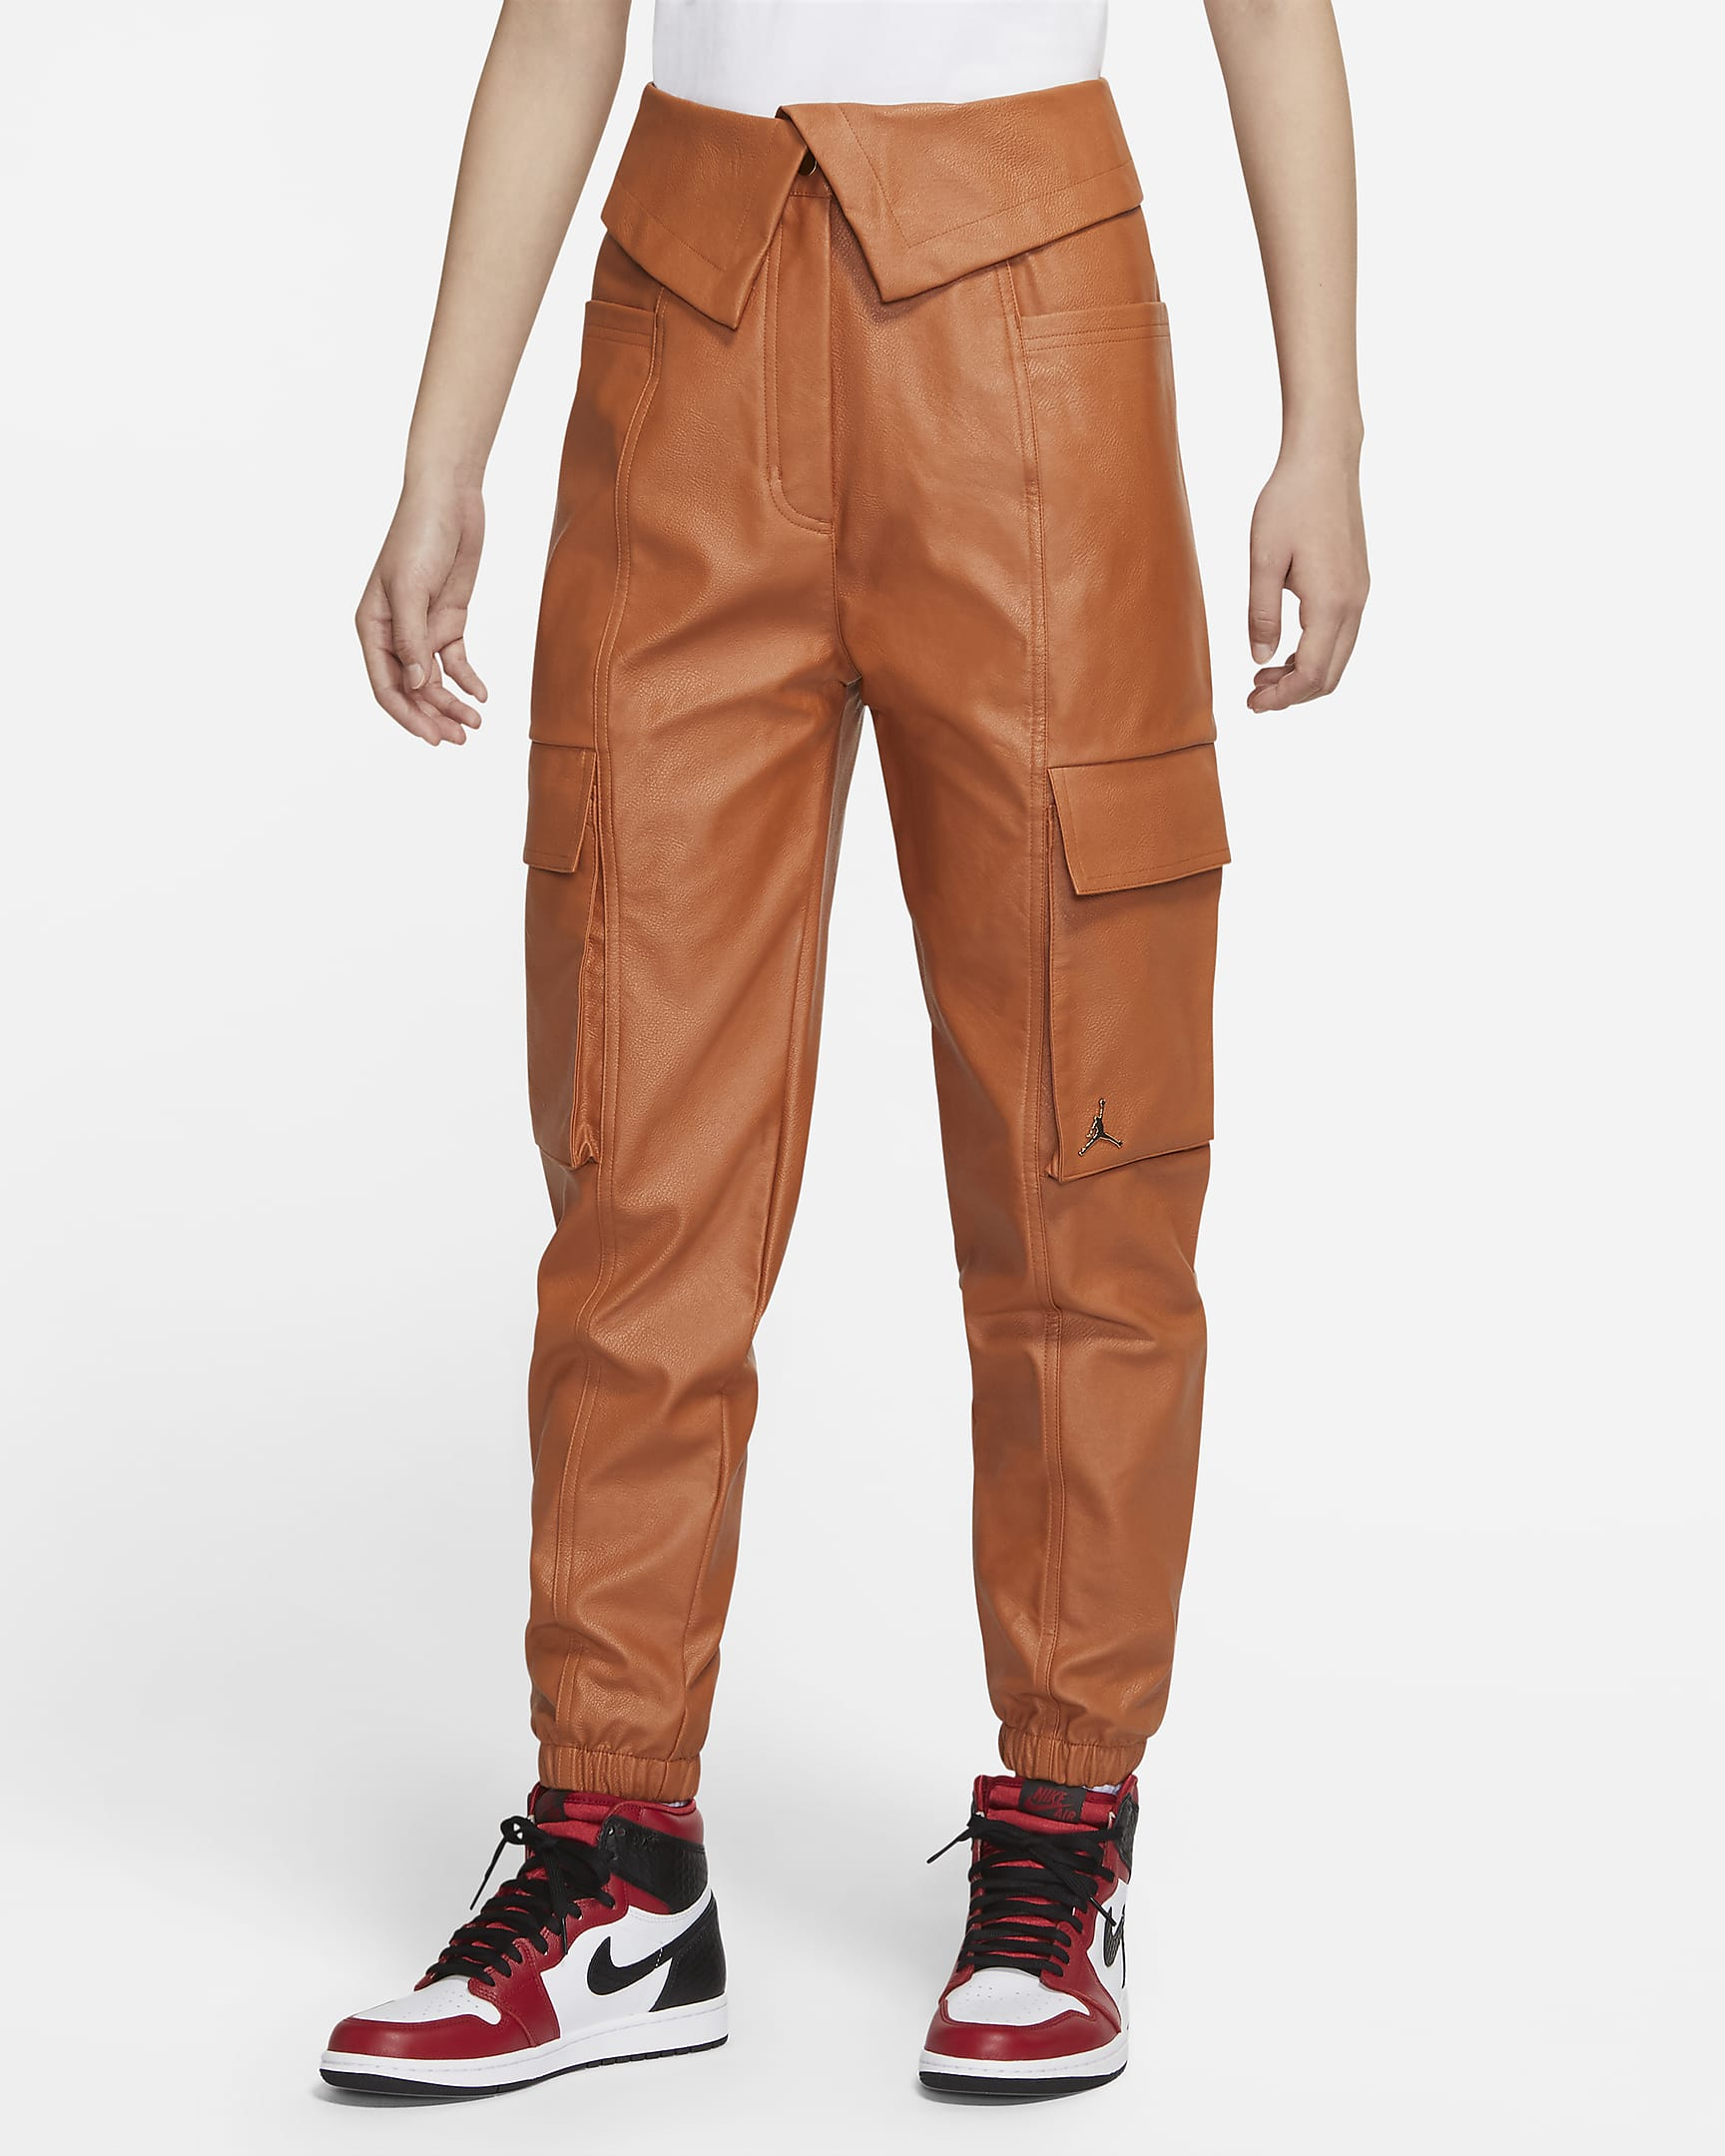 jordan-court-to-runway-womens-faux-leather-utility-pants-B740cR